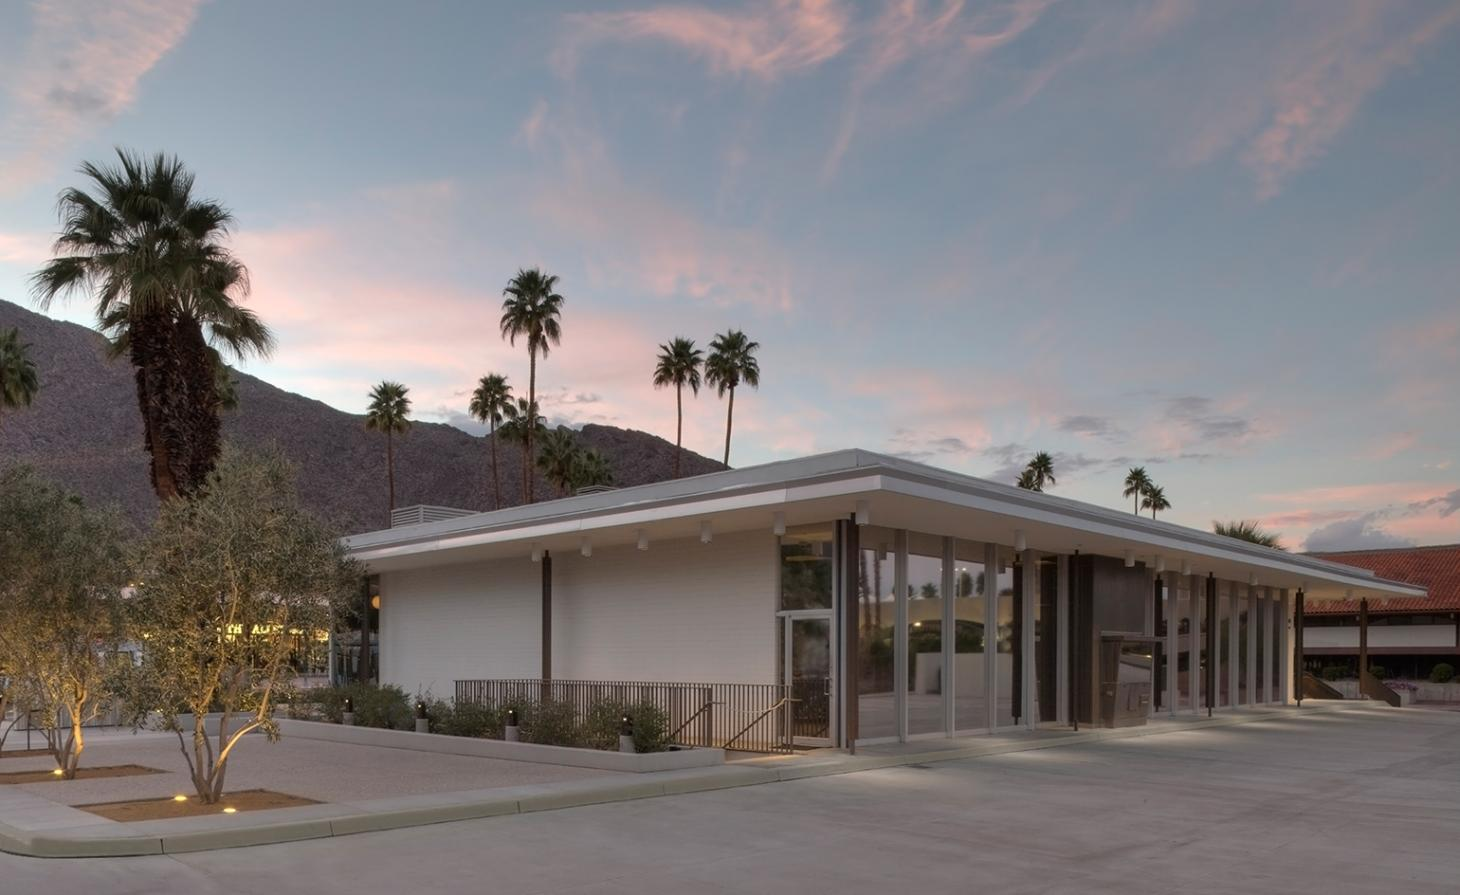 Edward Harris Pavilion Palm Springs Architecture and Design Center